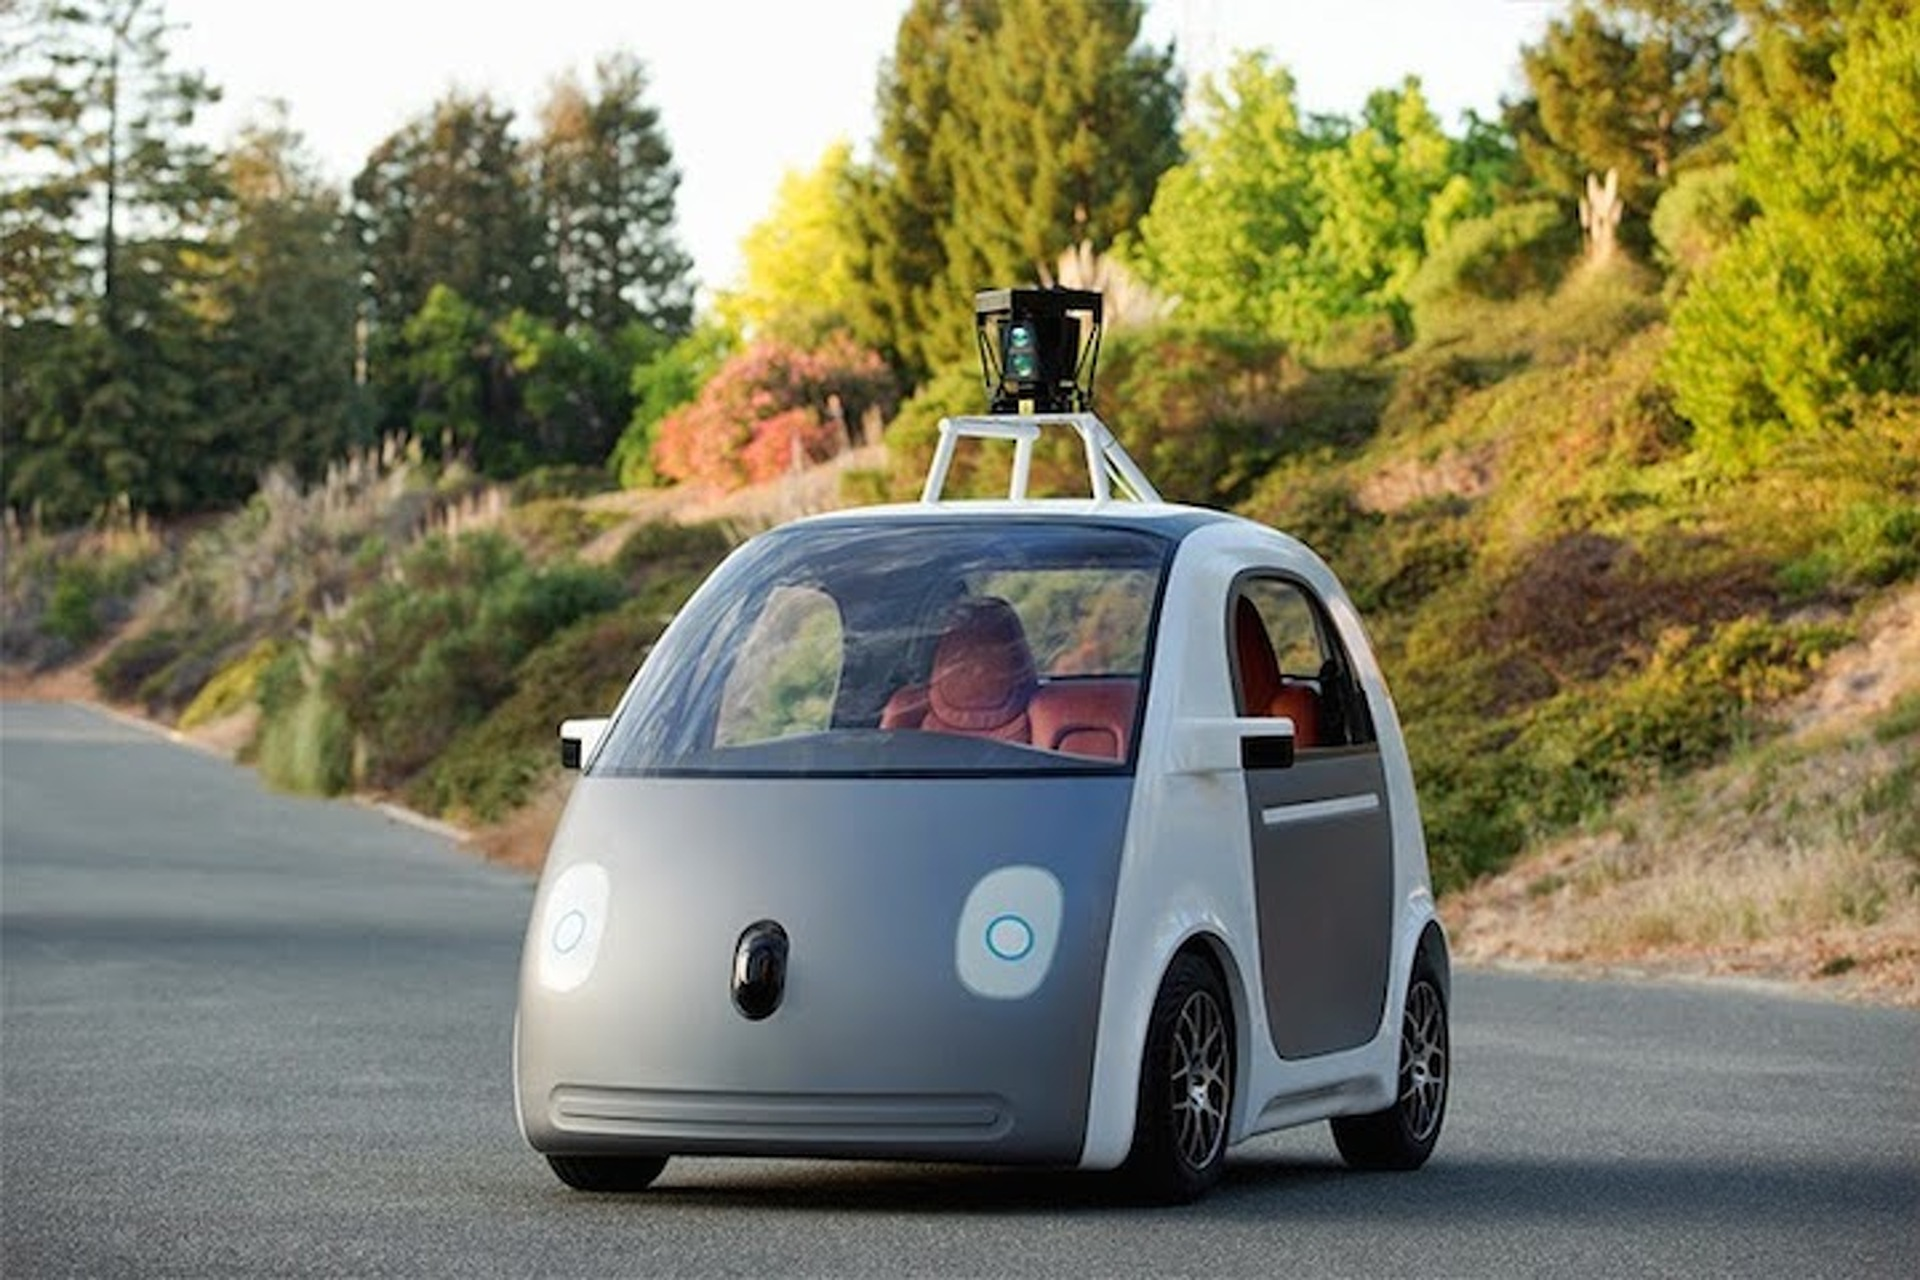 Google's Autonomous Cars Are Programmed To Speed